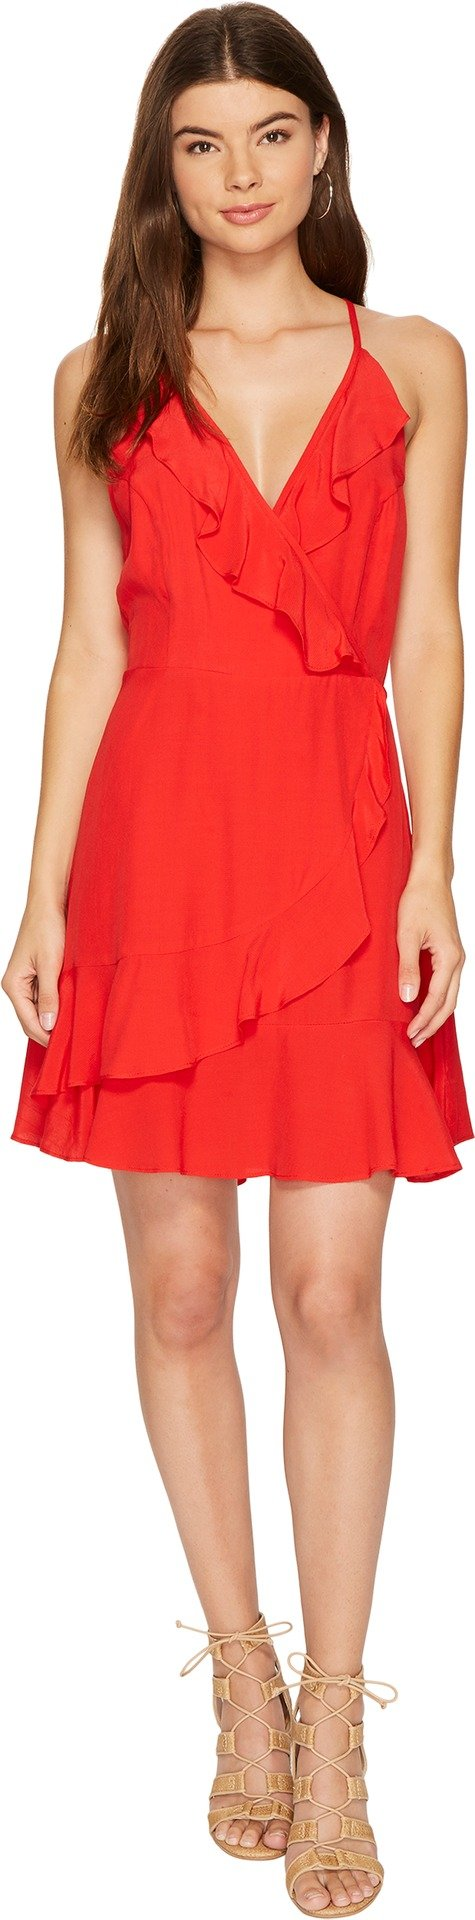 Lucy Love Women's Up All Night Dress Hot Tamale Dress